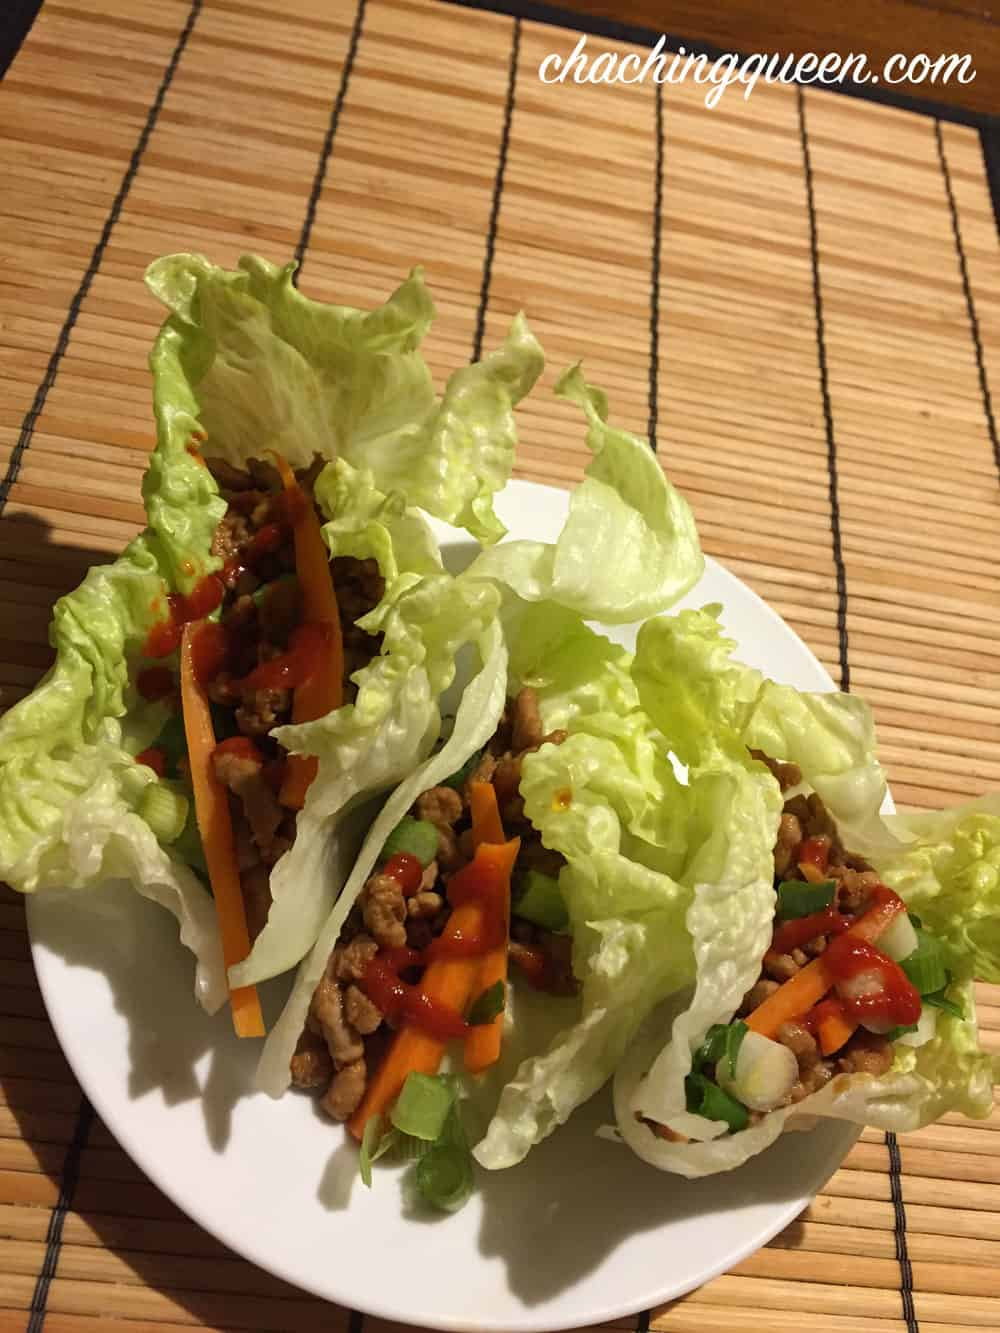 bikinis-in-the-snow-week-2-lettuce-wraps-recipe